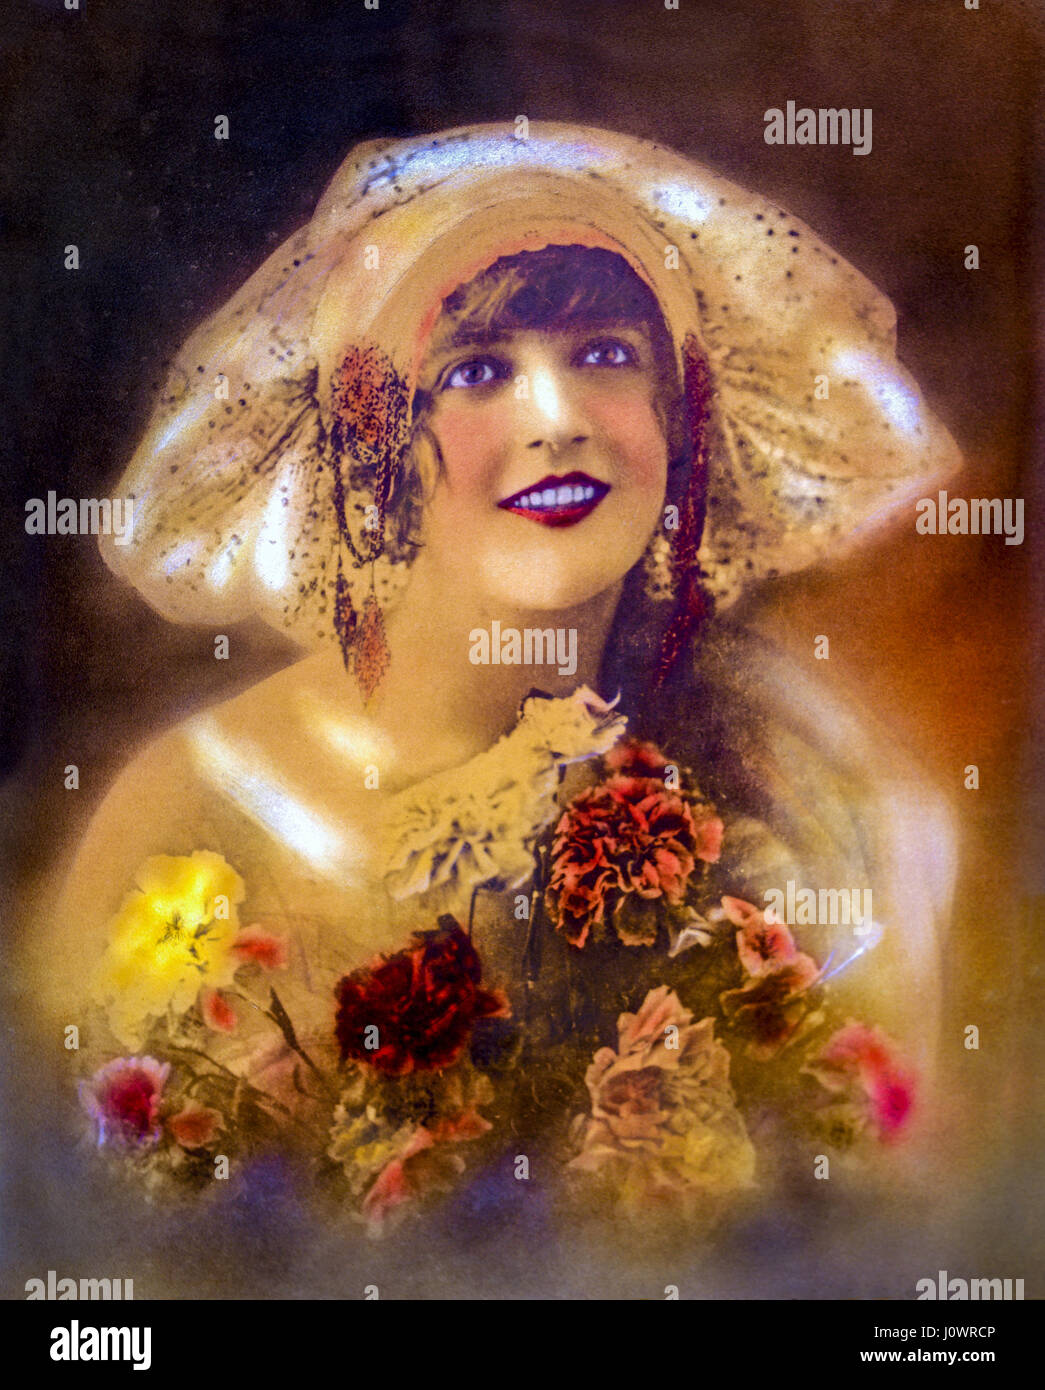 Hand-colored vintage portrait of a smiling 1920s era Flapper girl in her twenties wearing a wide brim cloche hat - Stock Image